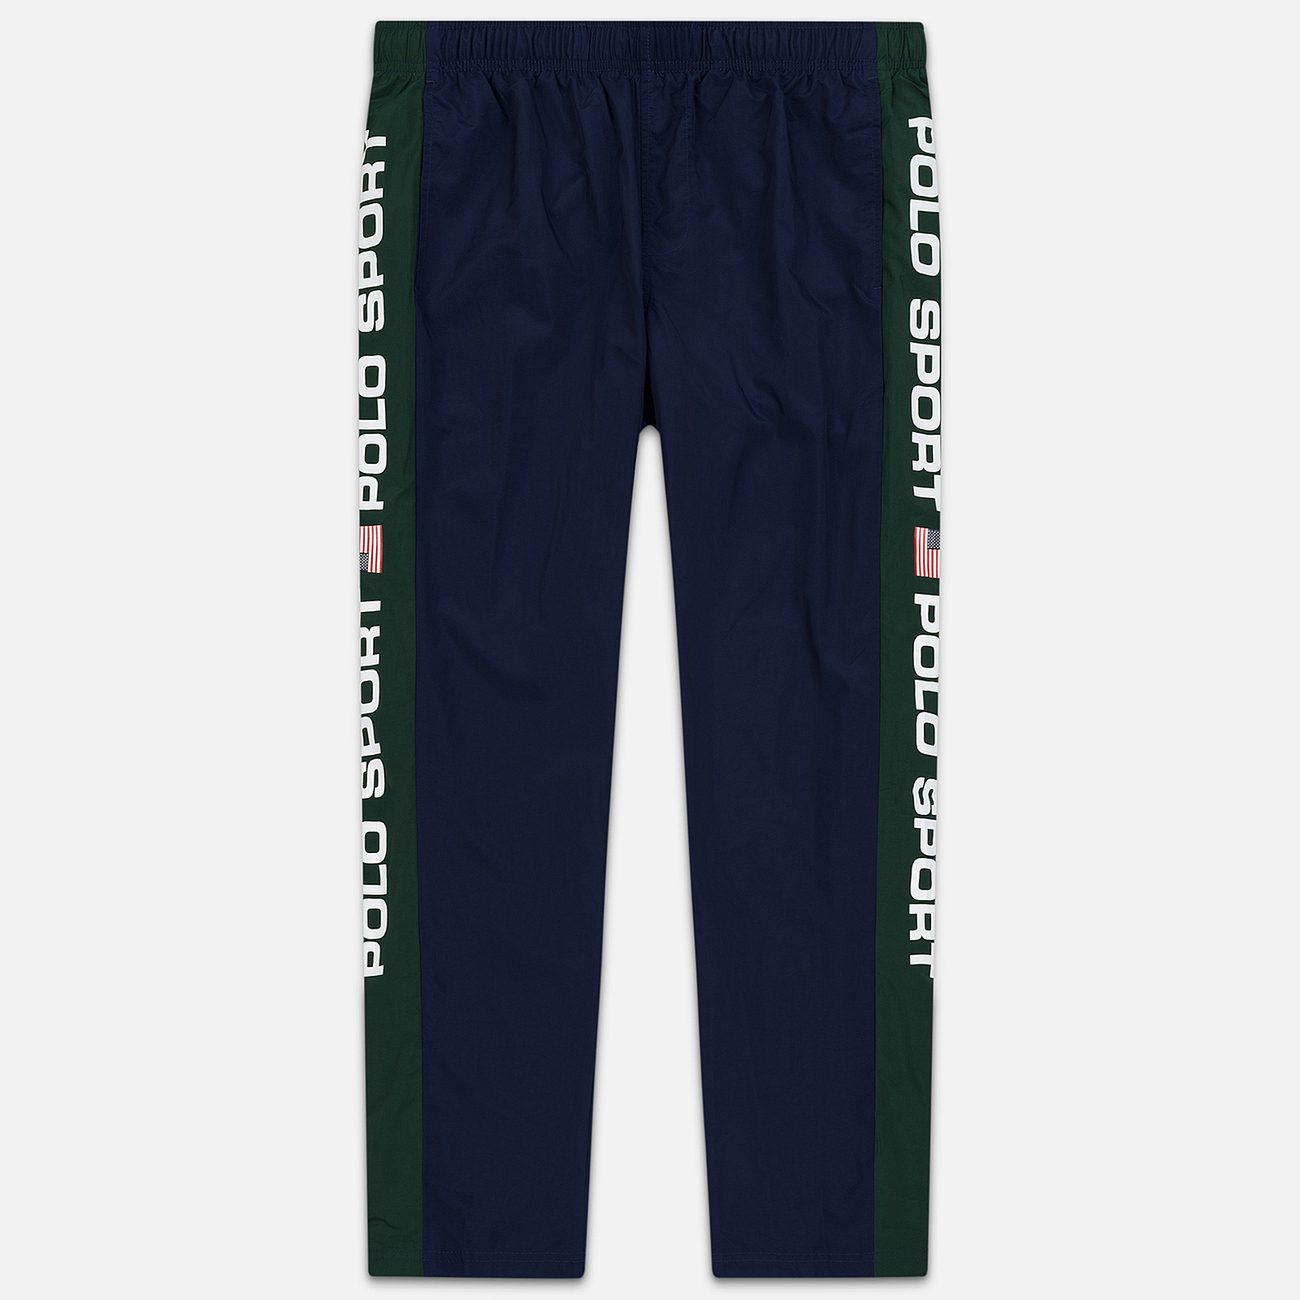 Мужские брюки Polo Ralph Lauren Relaxed Fit OG Pull Up Cruise Navy/College Green